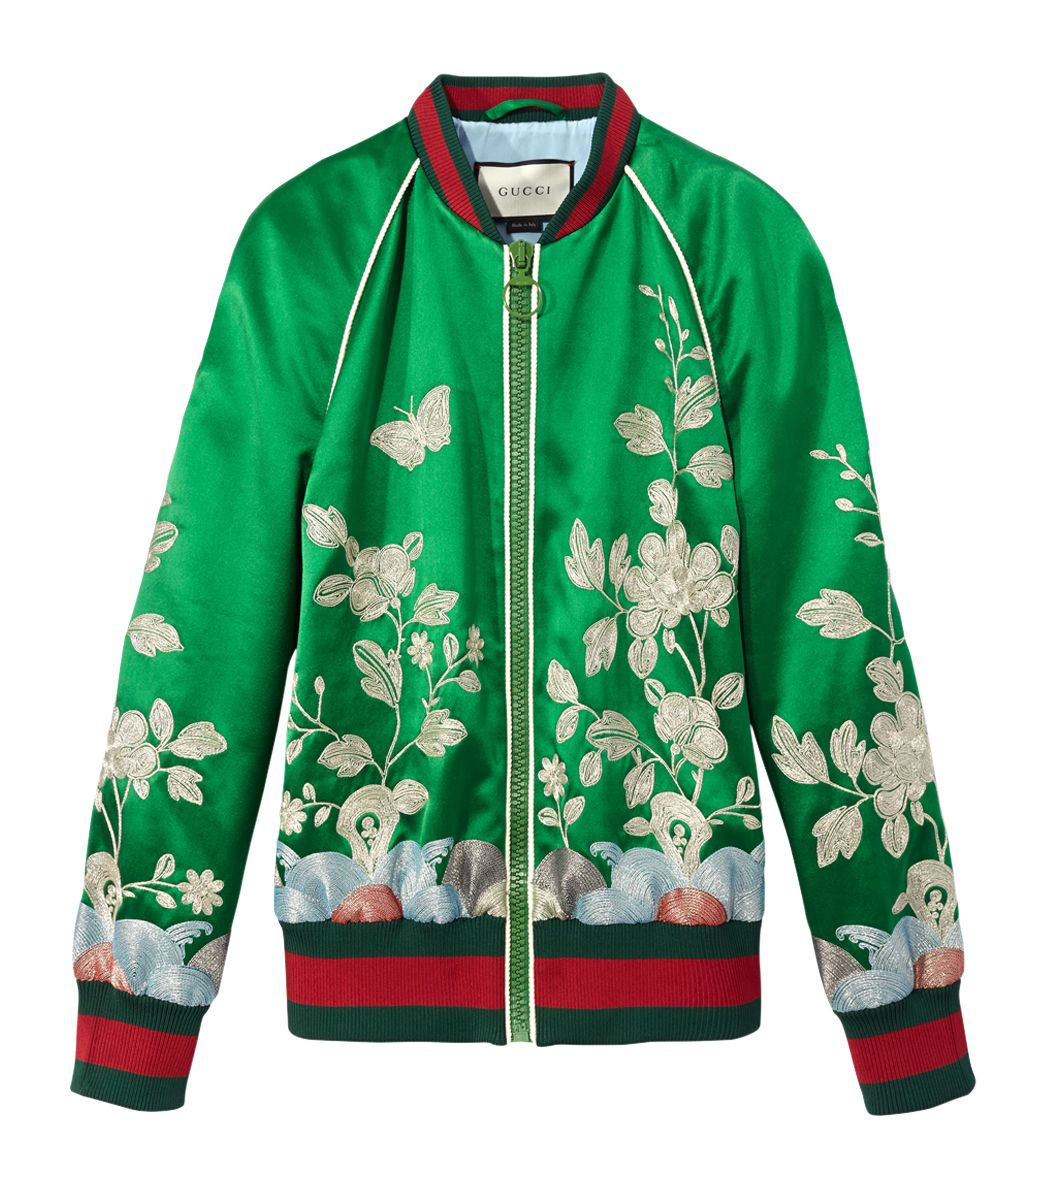 a7cdd4a55 Gucci Silk Floral Bomber Jacket | Apparel We Love | Floral bomber ...